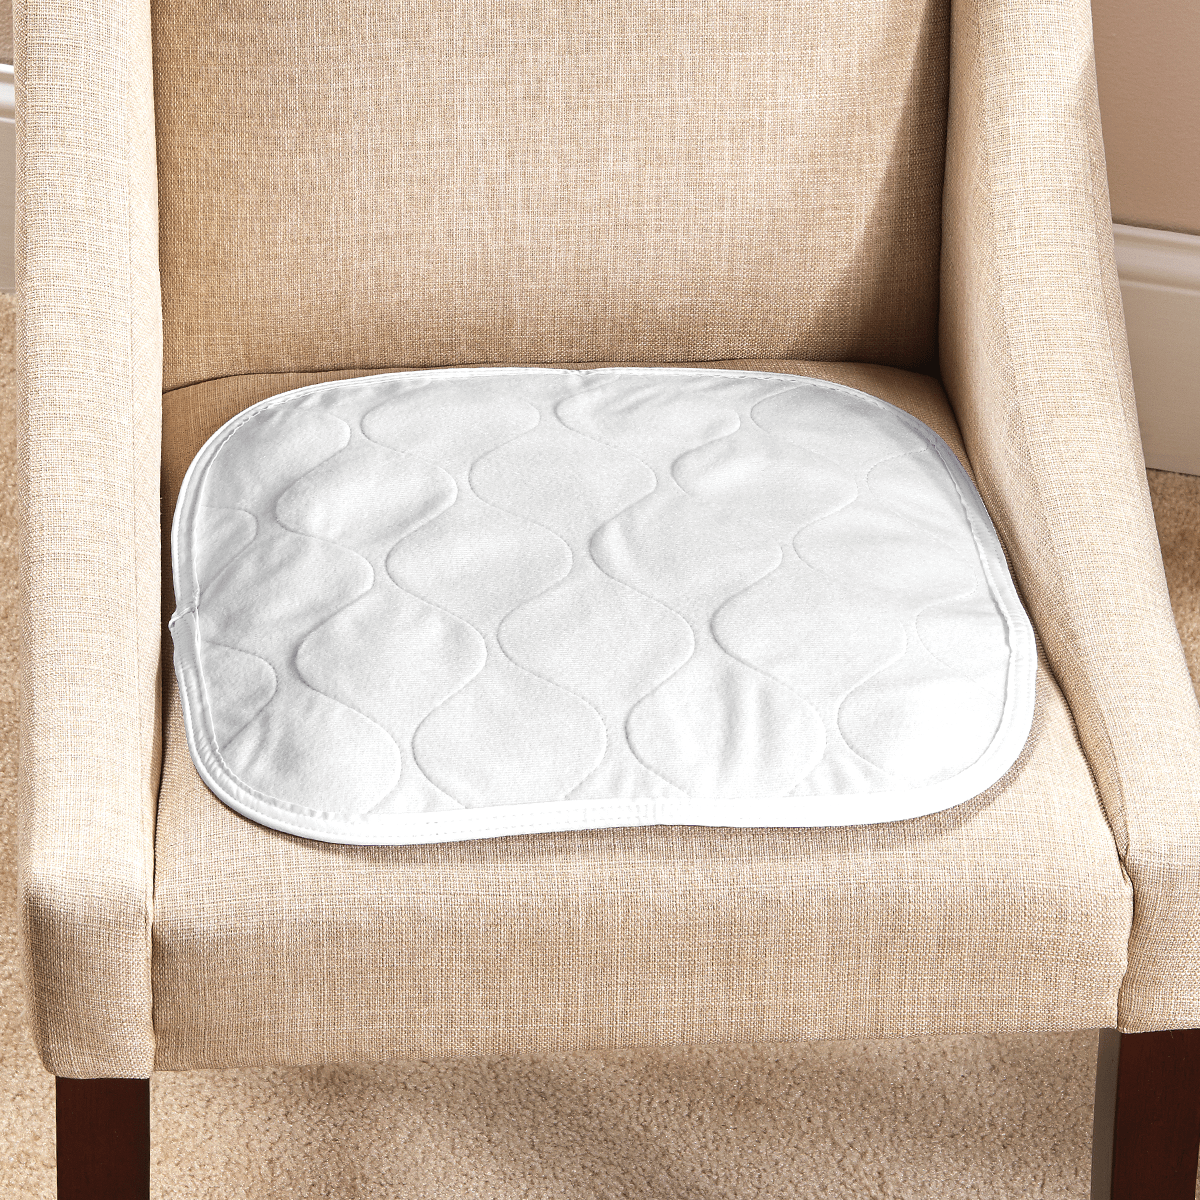 chair covers for incontinence round back carefor deluxe seat pad salk inc